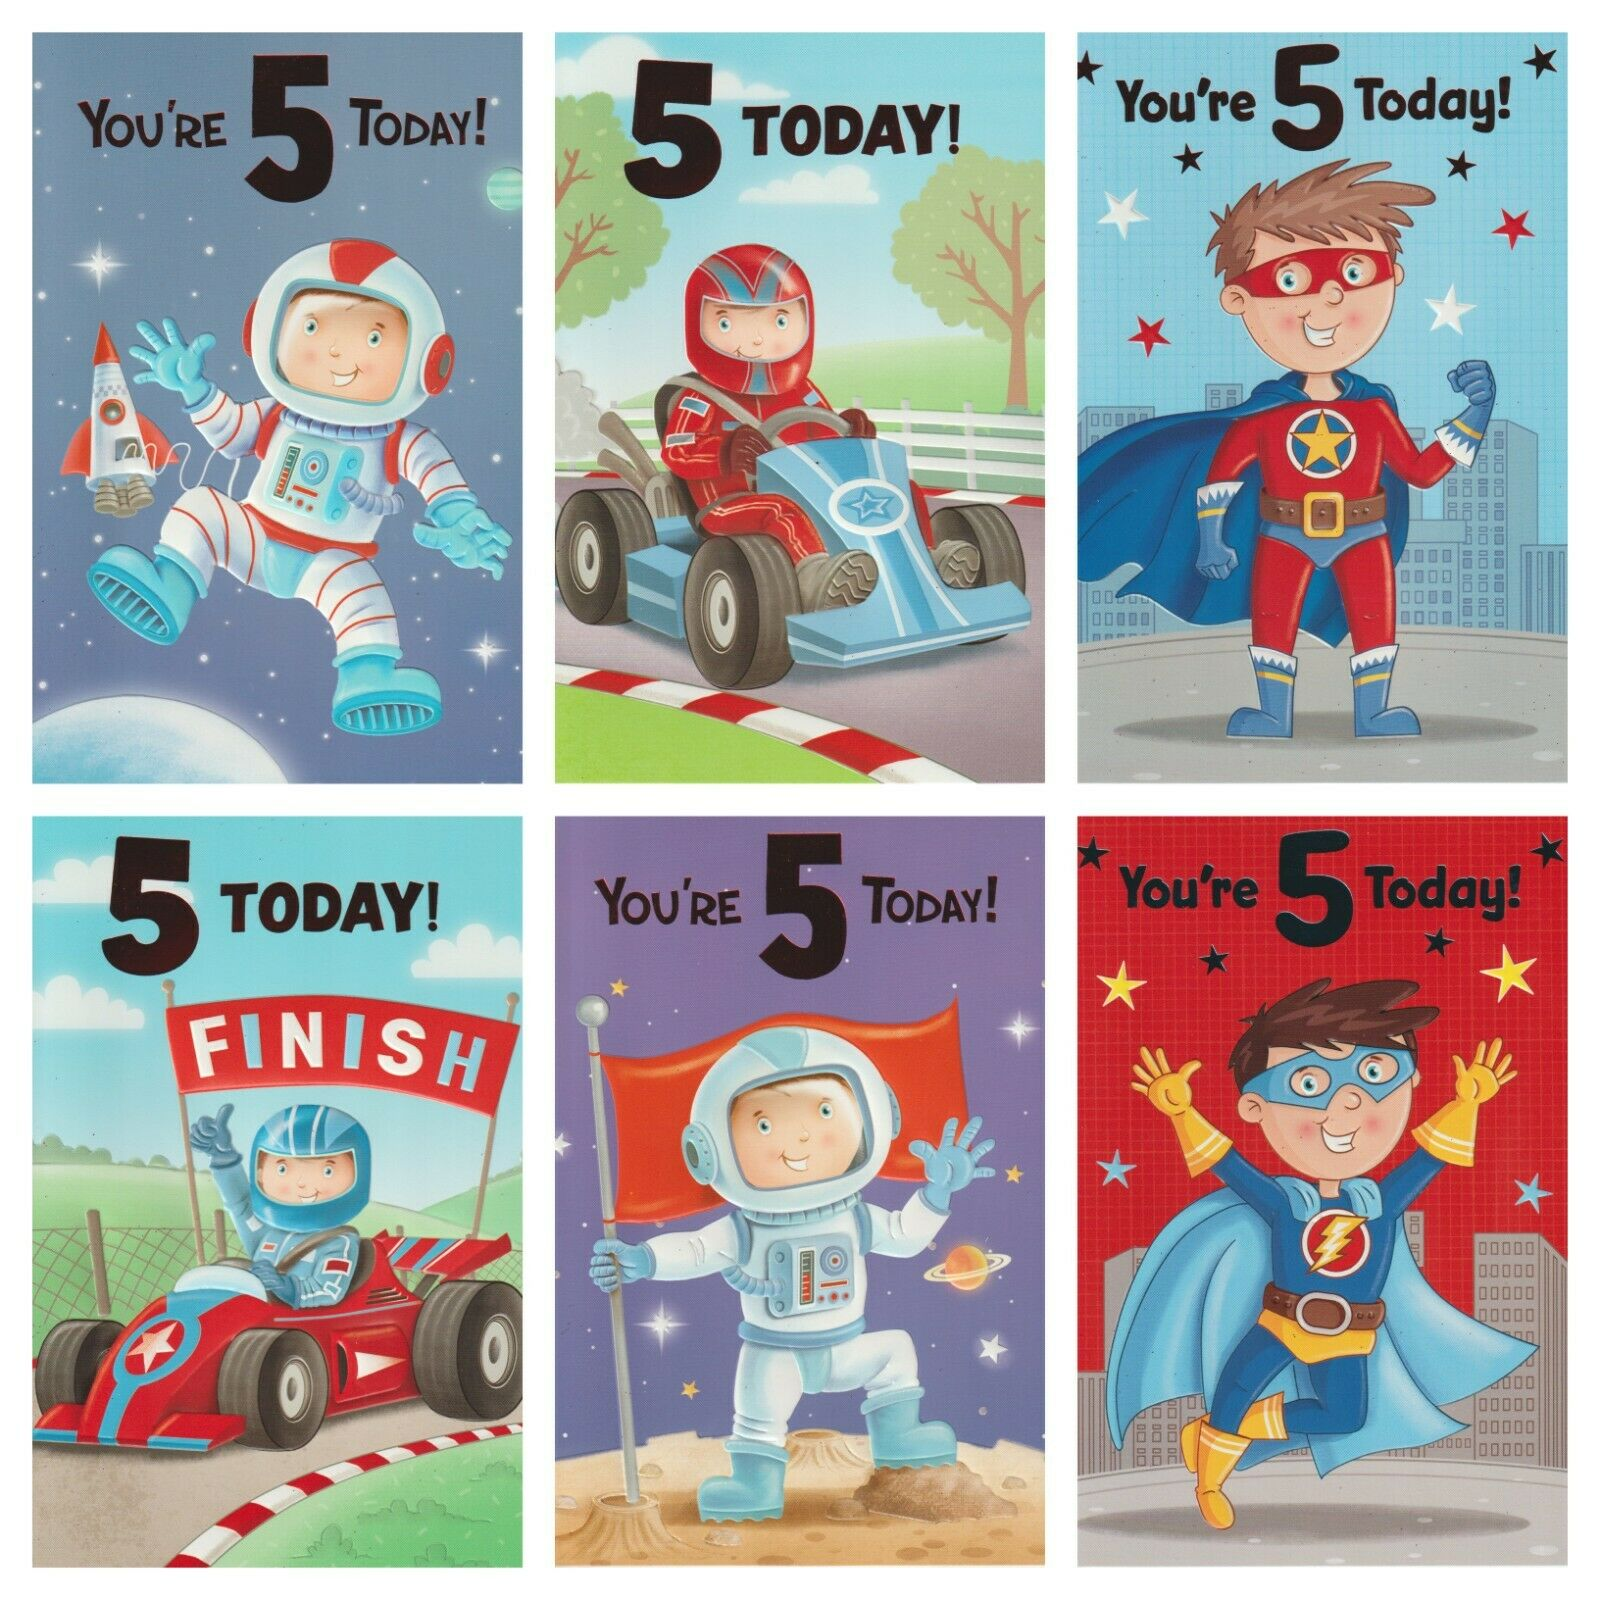 Age 5 Boys Birthday Card Today Youre Choice Of Cards 1 2FREE Shipping